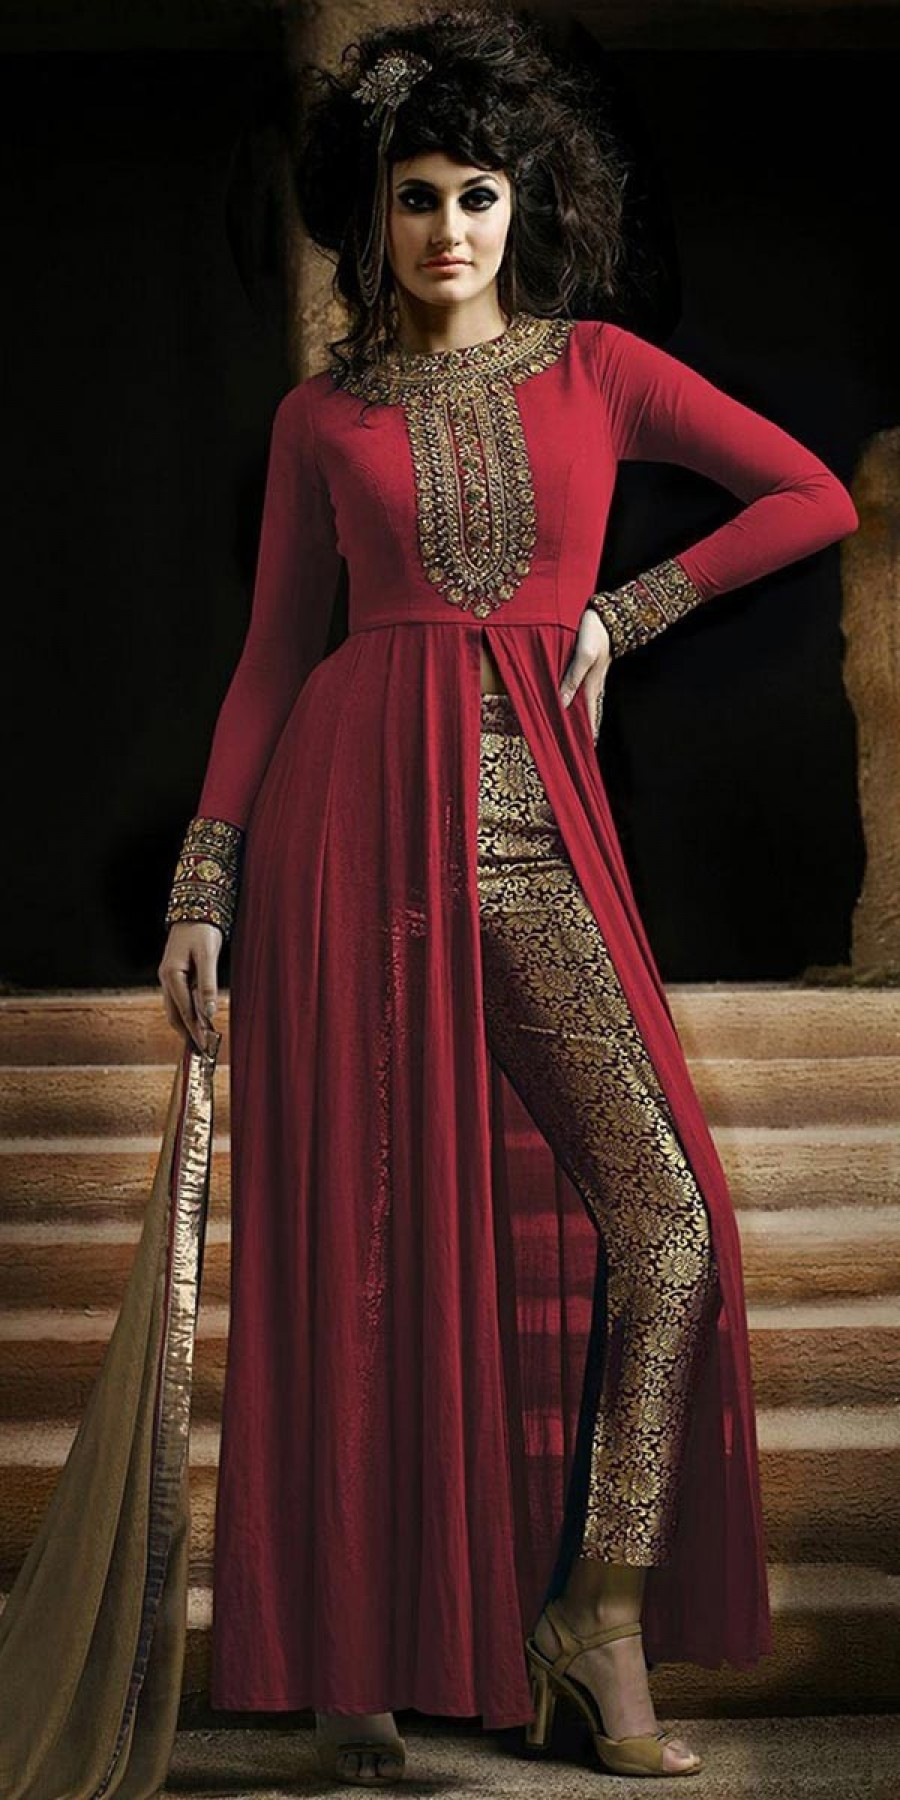 Buy Stunning Red And Beige Georgette Salwar Suit With Dupatta Online